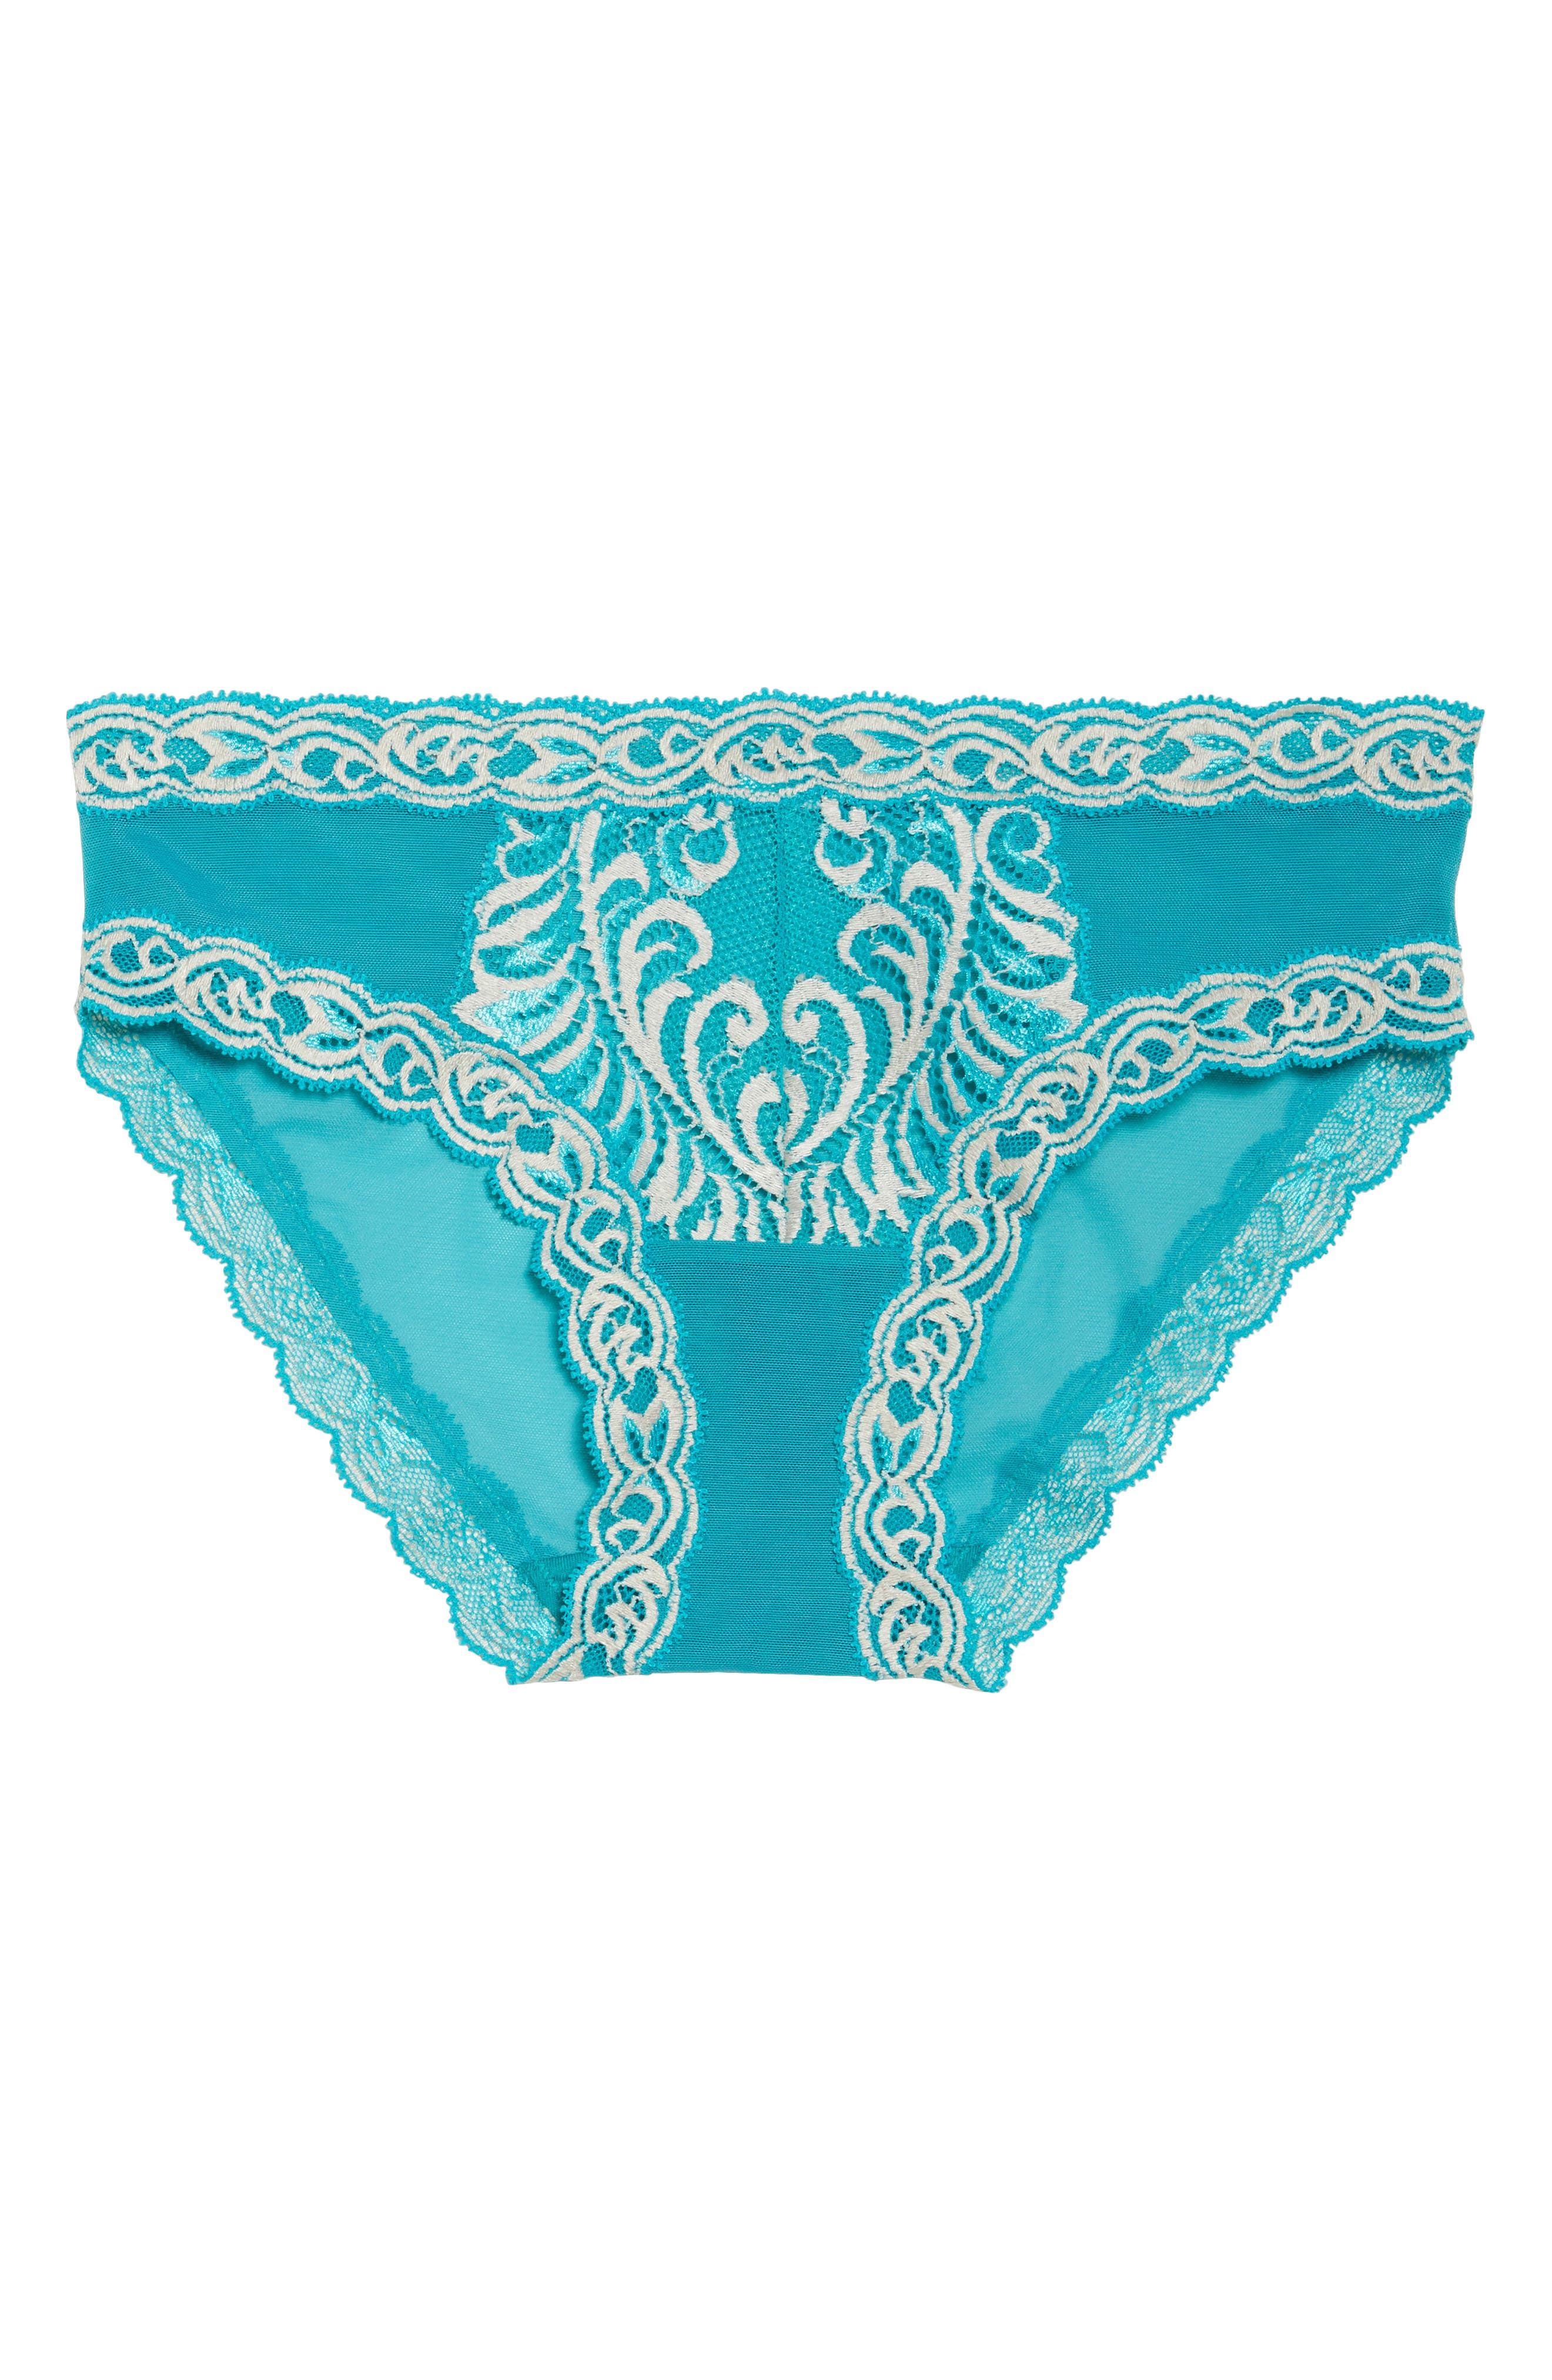 Feathers Hipster Briefs,                             Alternate thumbnail 480, color,